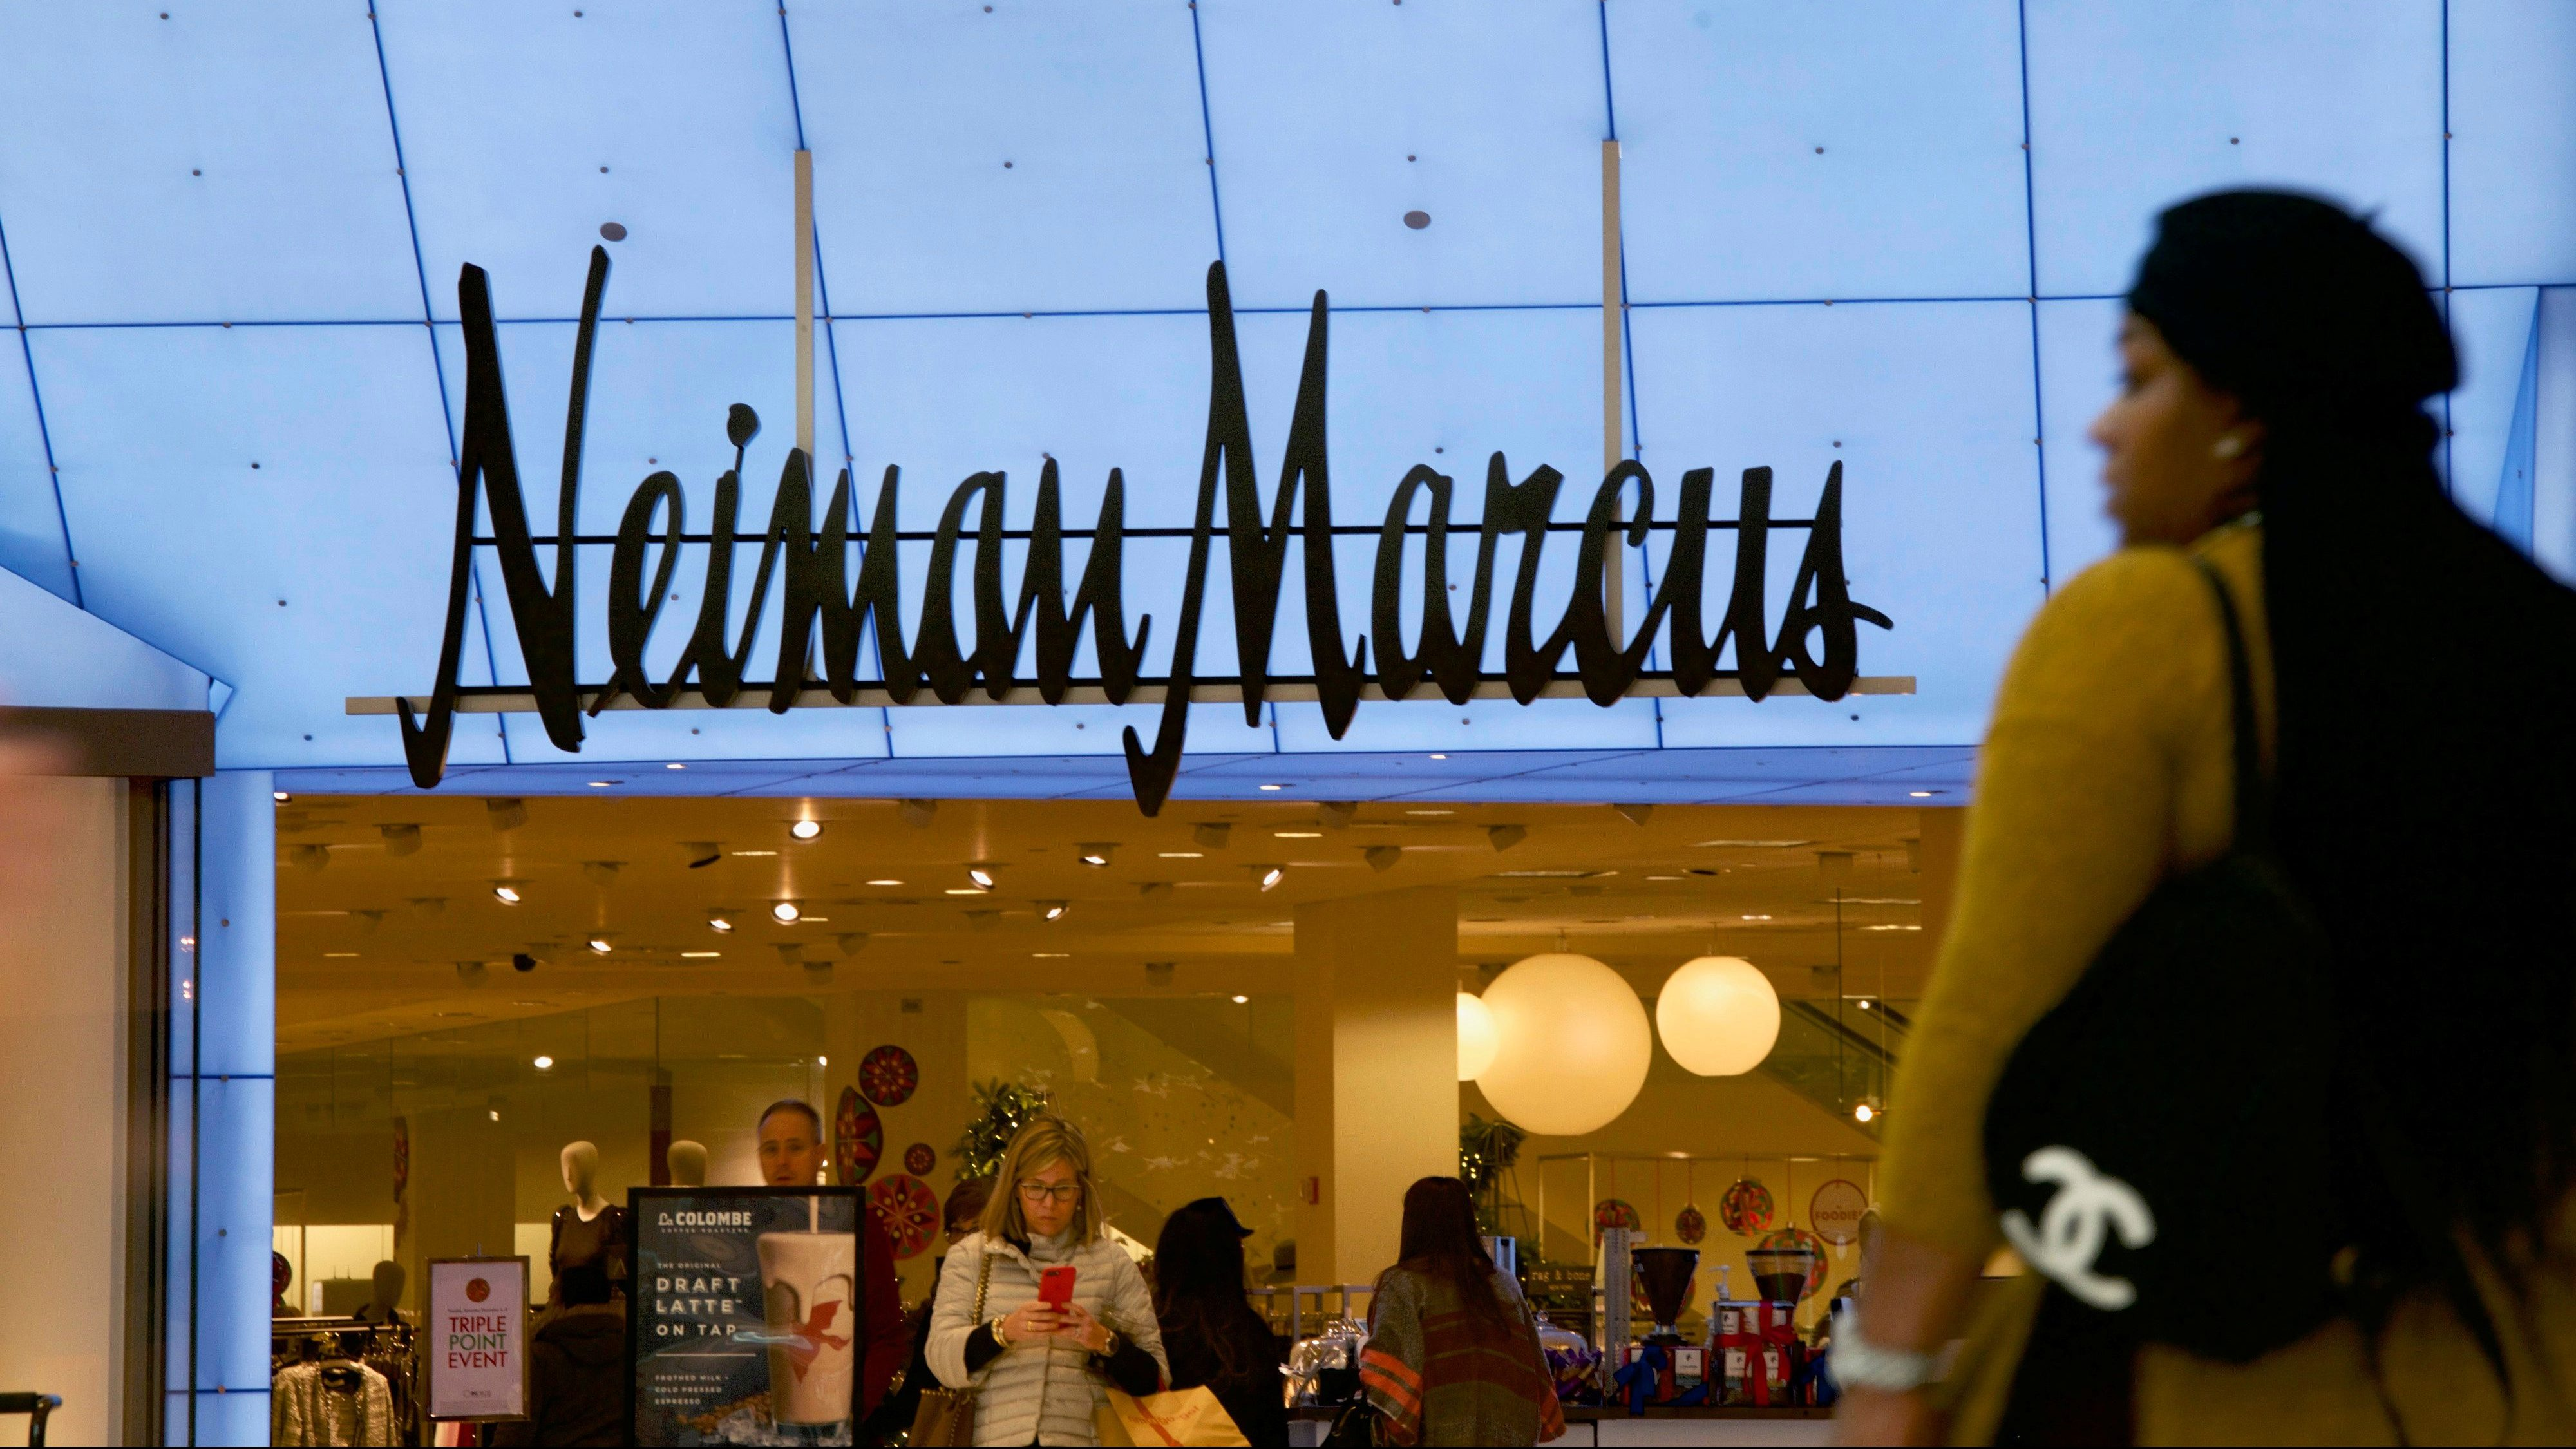 Shoppers enter and exit the Neiman Marcus at the King of Prussia Mall, United States' largest retail shopping space, in King of Prussia, Pennsylvania, U.S., December 8, 2018. REUTERS/Mark Makela - RC127A851360